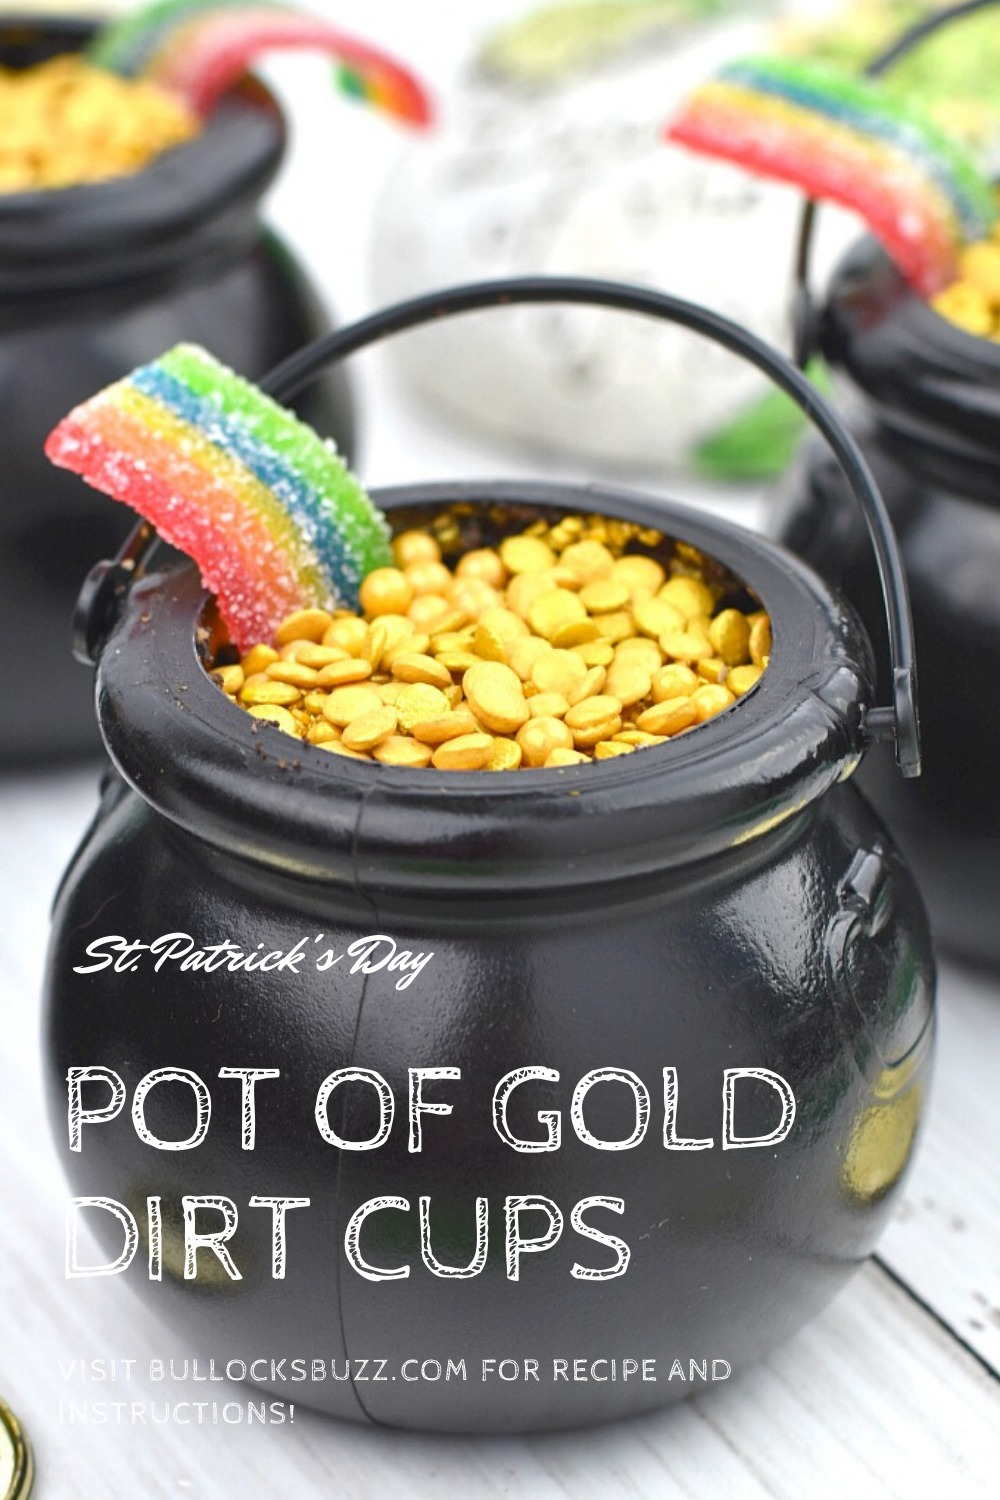 These adorable Pot of Gold Dirt Cups are quick and easy to make. Plus they taste as good as they look! #recipes #StPatricksDay #bullocksbuzz